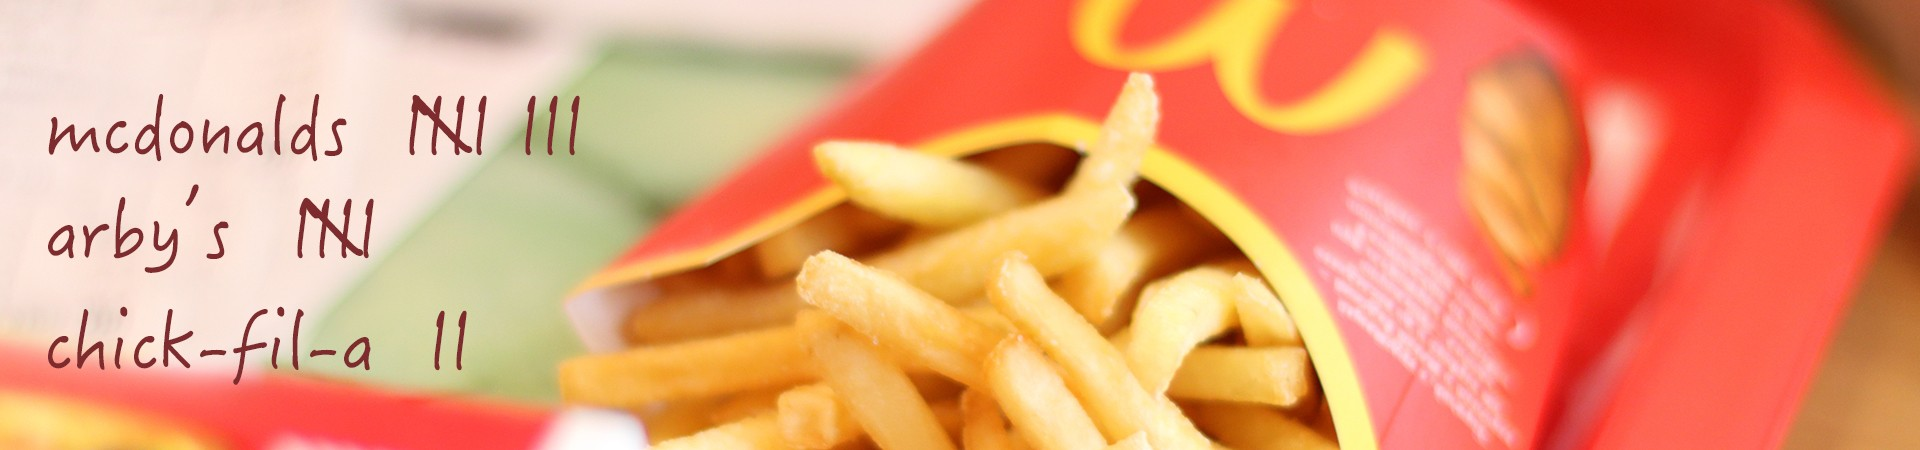 Mcdonalds fries - arbys and chick-fil-a